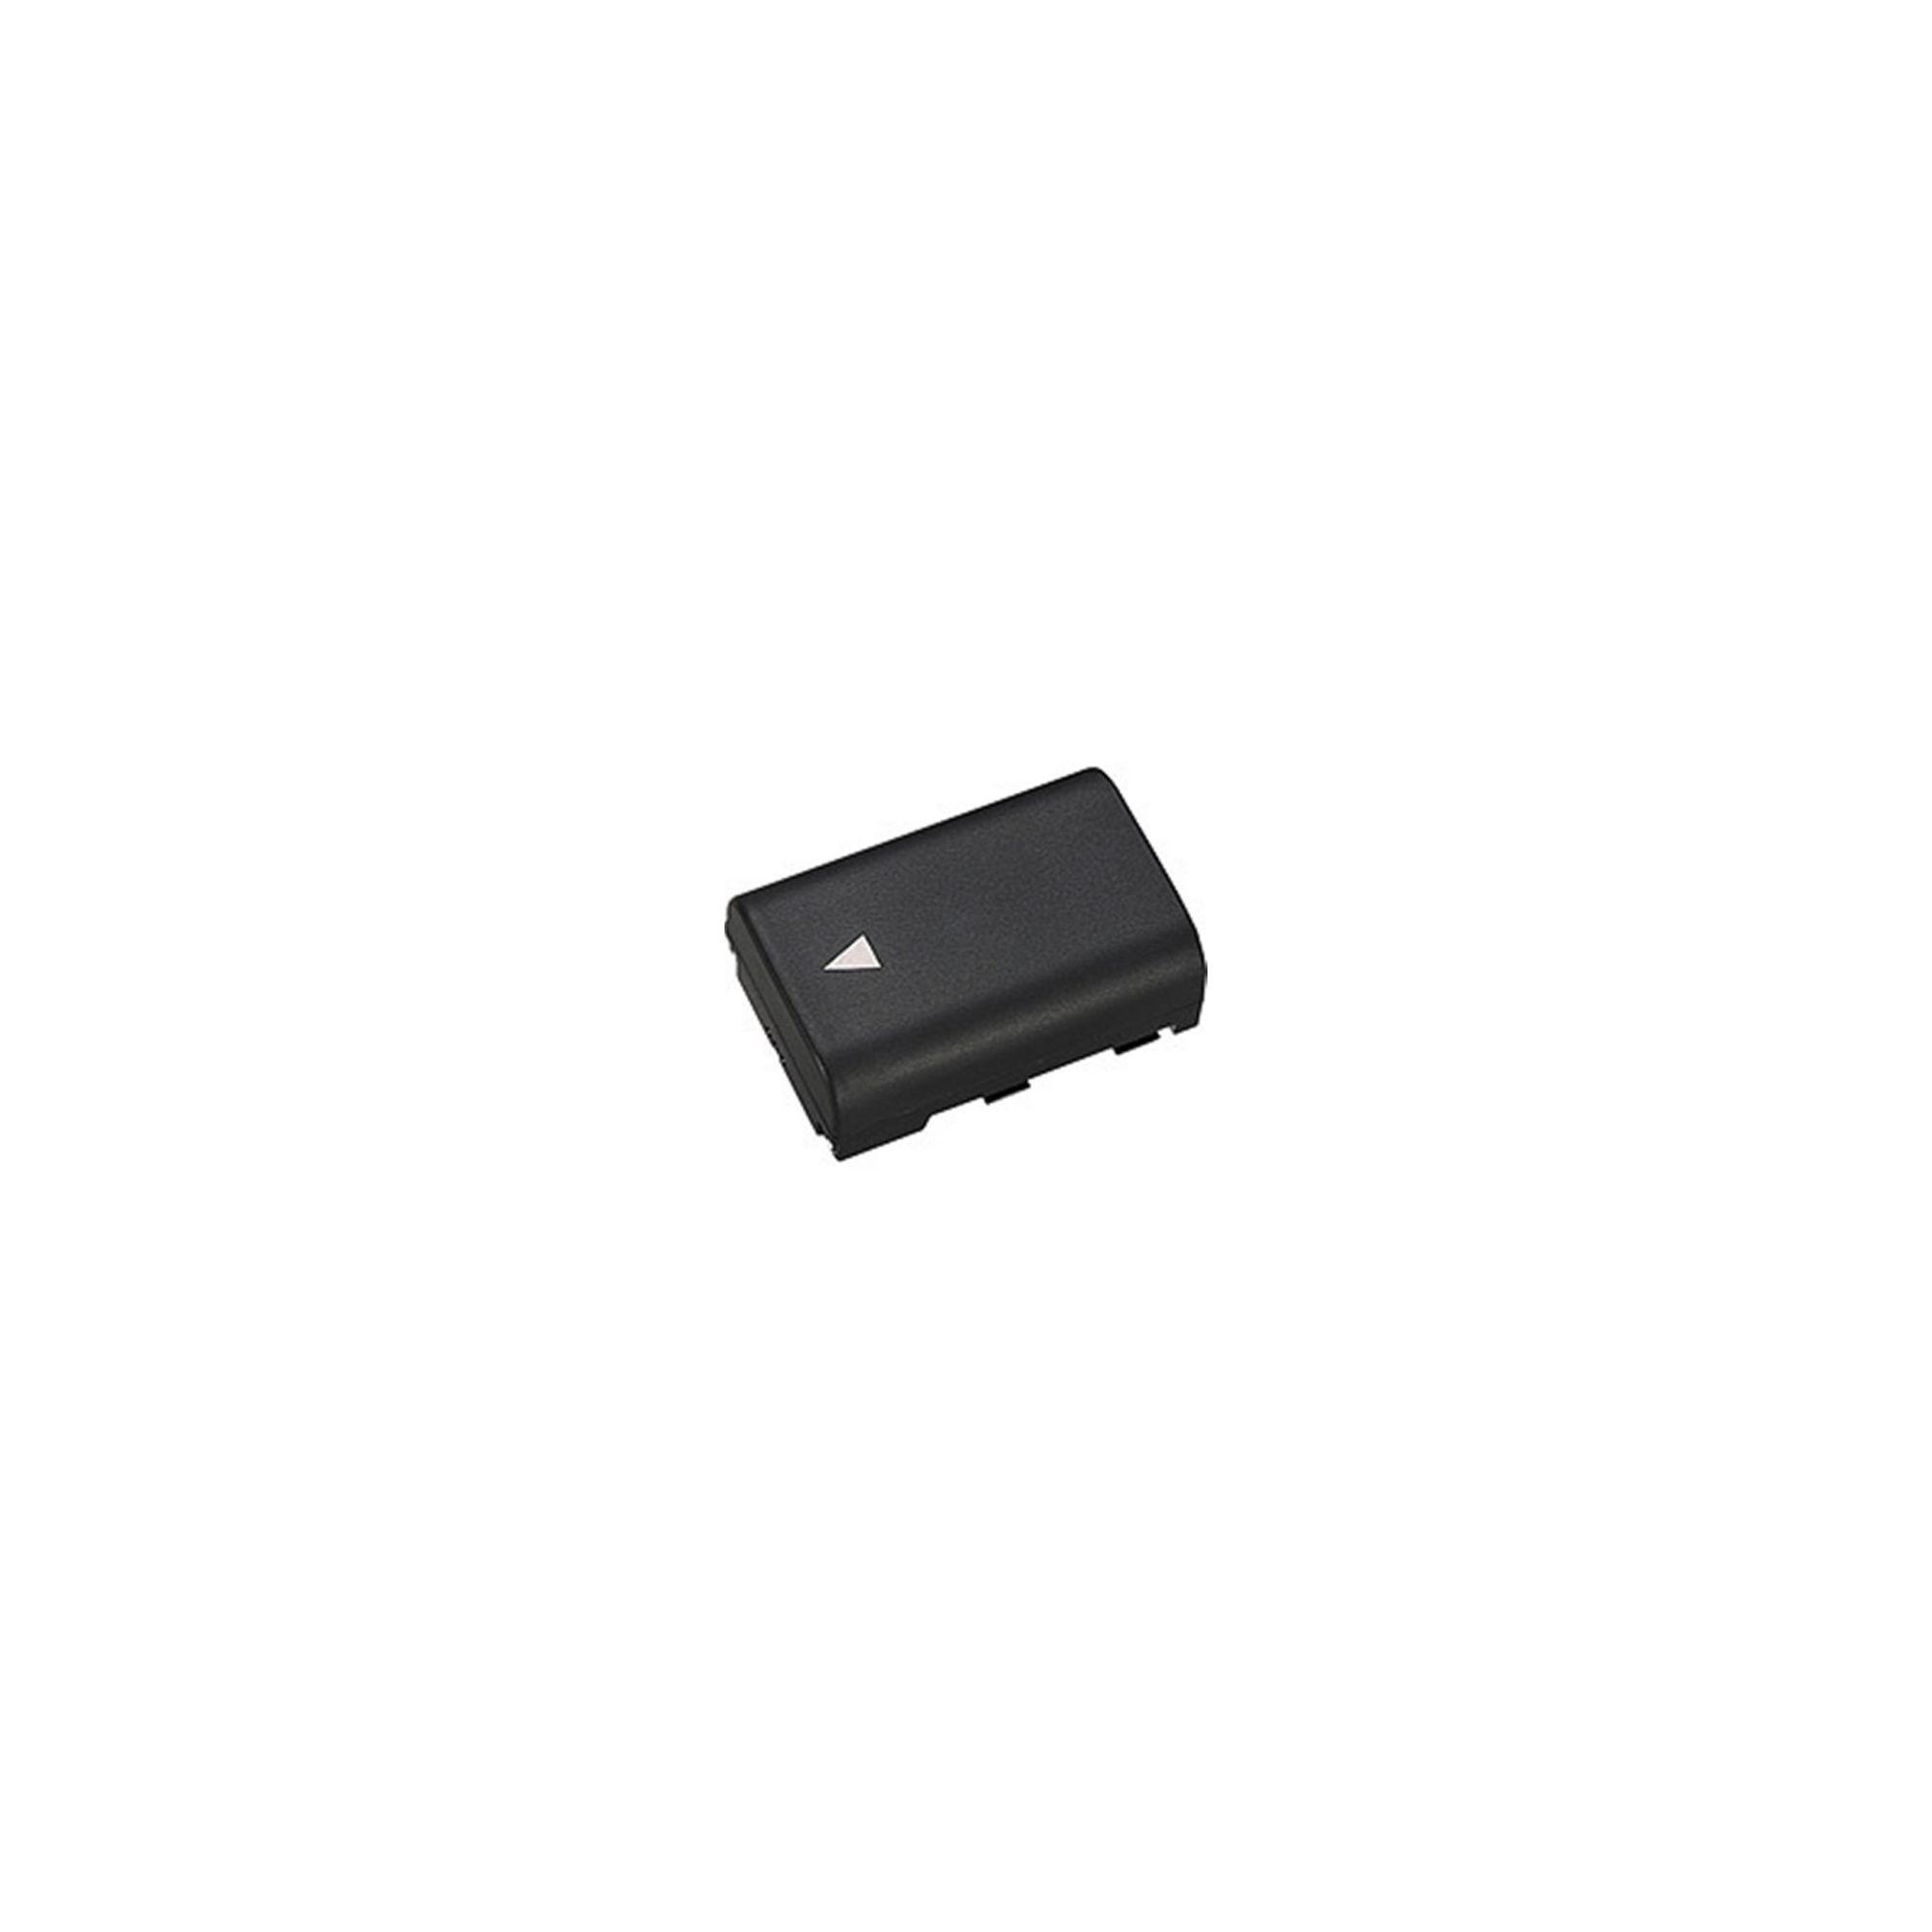 Inov8 BN-V607 Replacement Digital Camera Battery For JVC